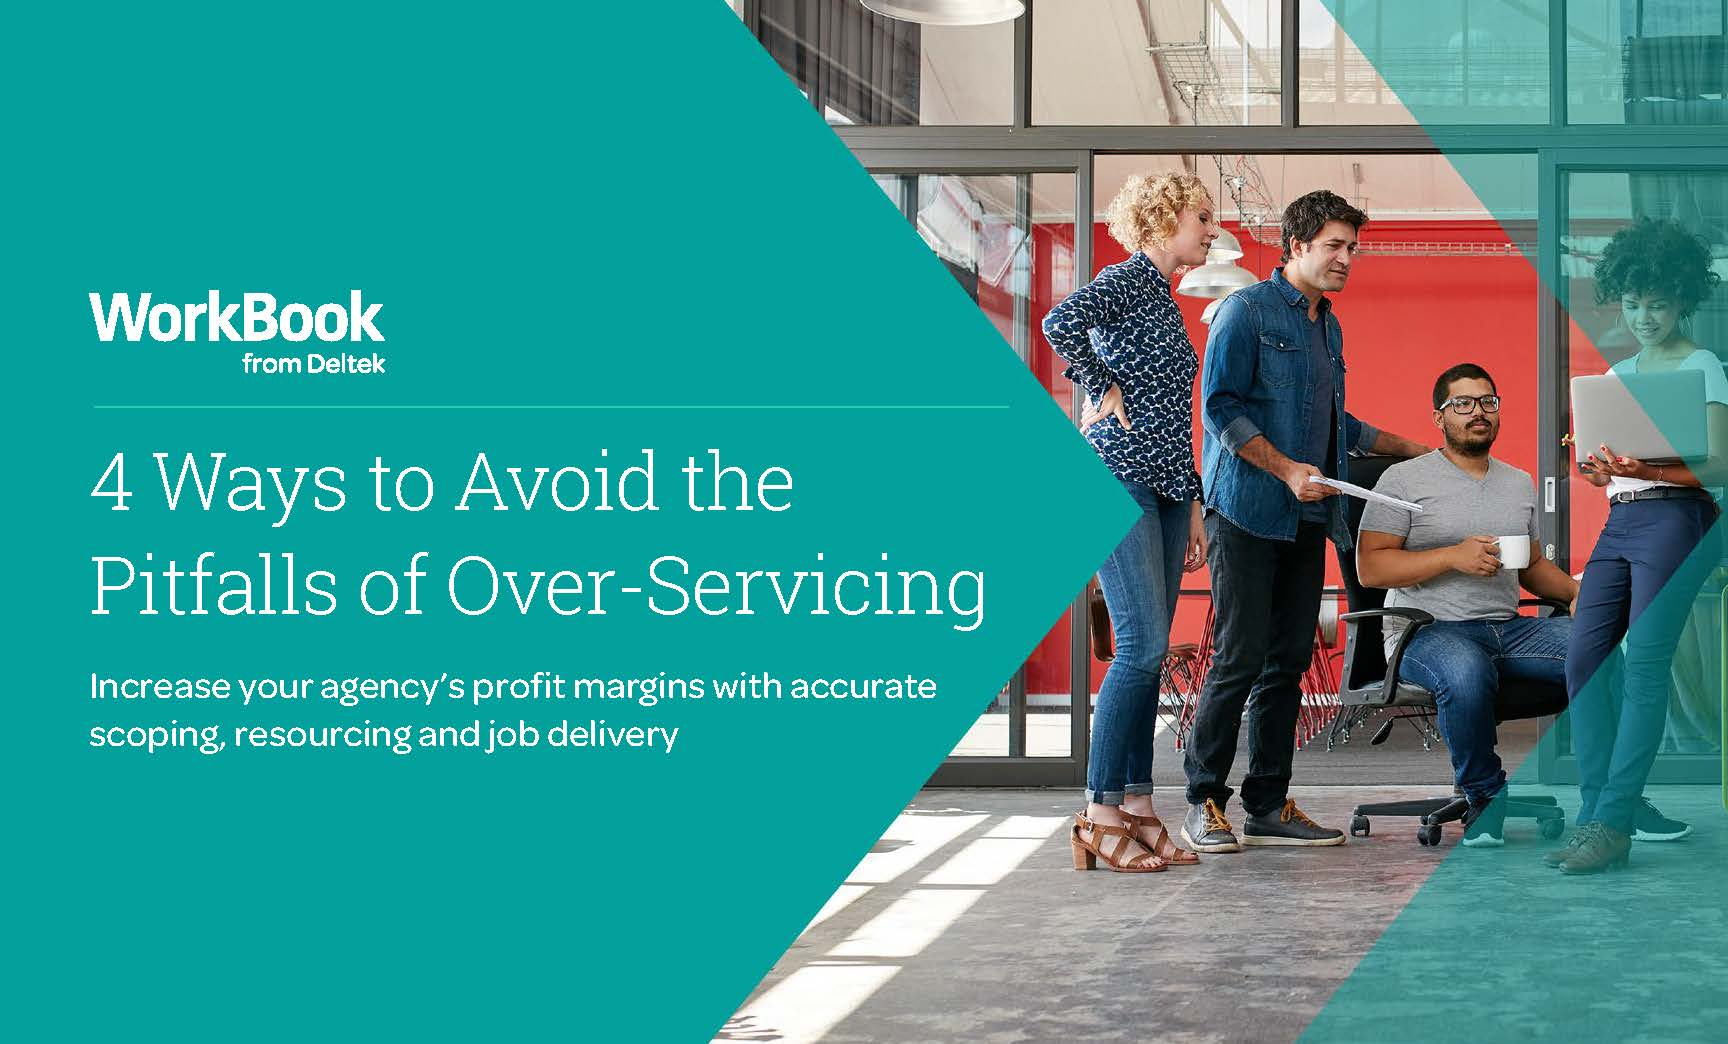 4 Ways to Avoid the Pitfalls of Over-Servicing